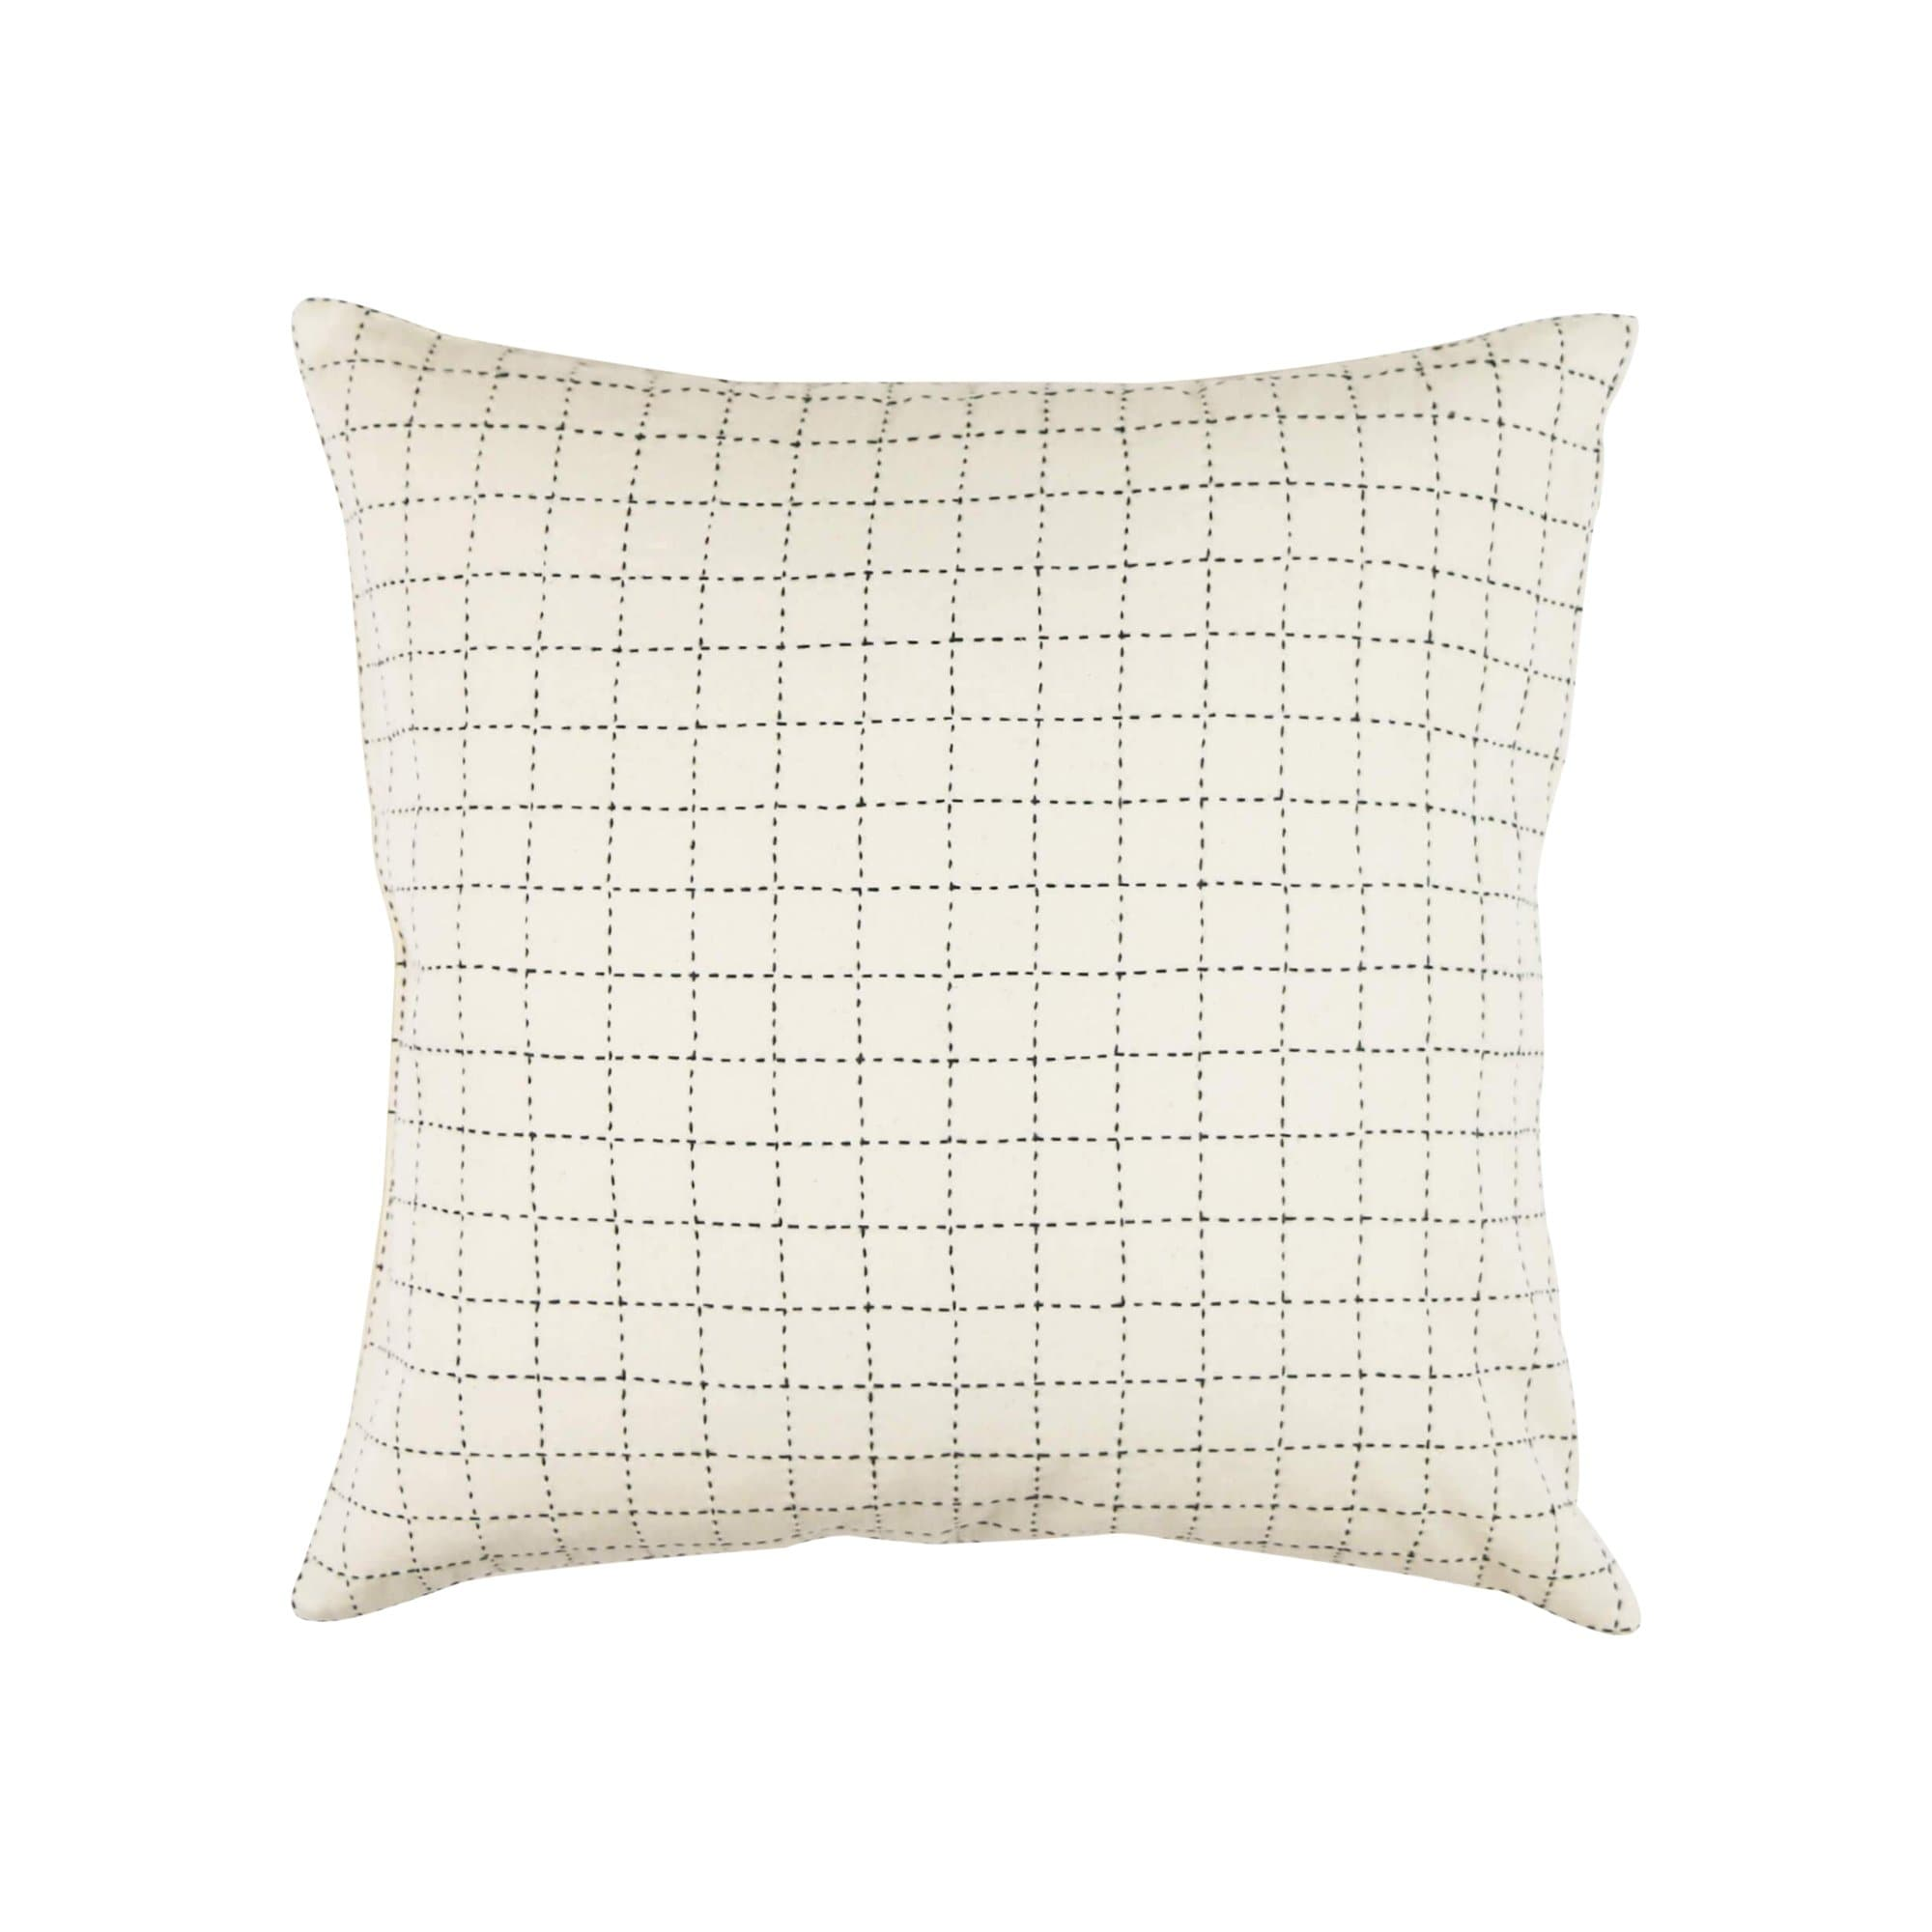 Anchal Project Cushions + Throws Mini Grid-Stitch Throw Pillow